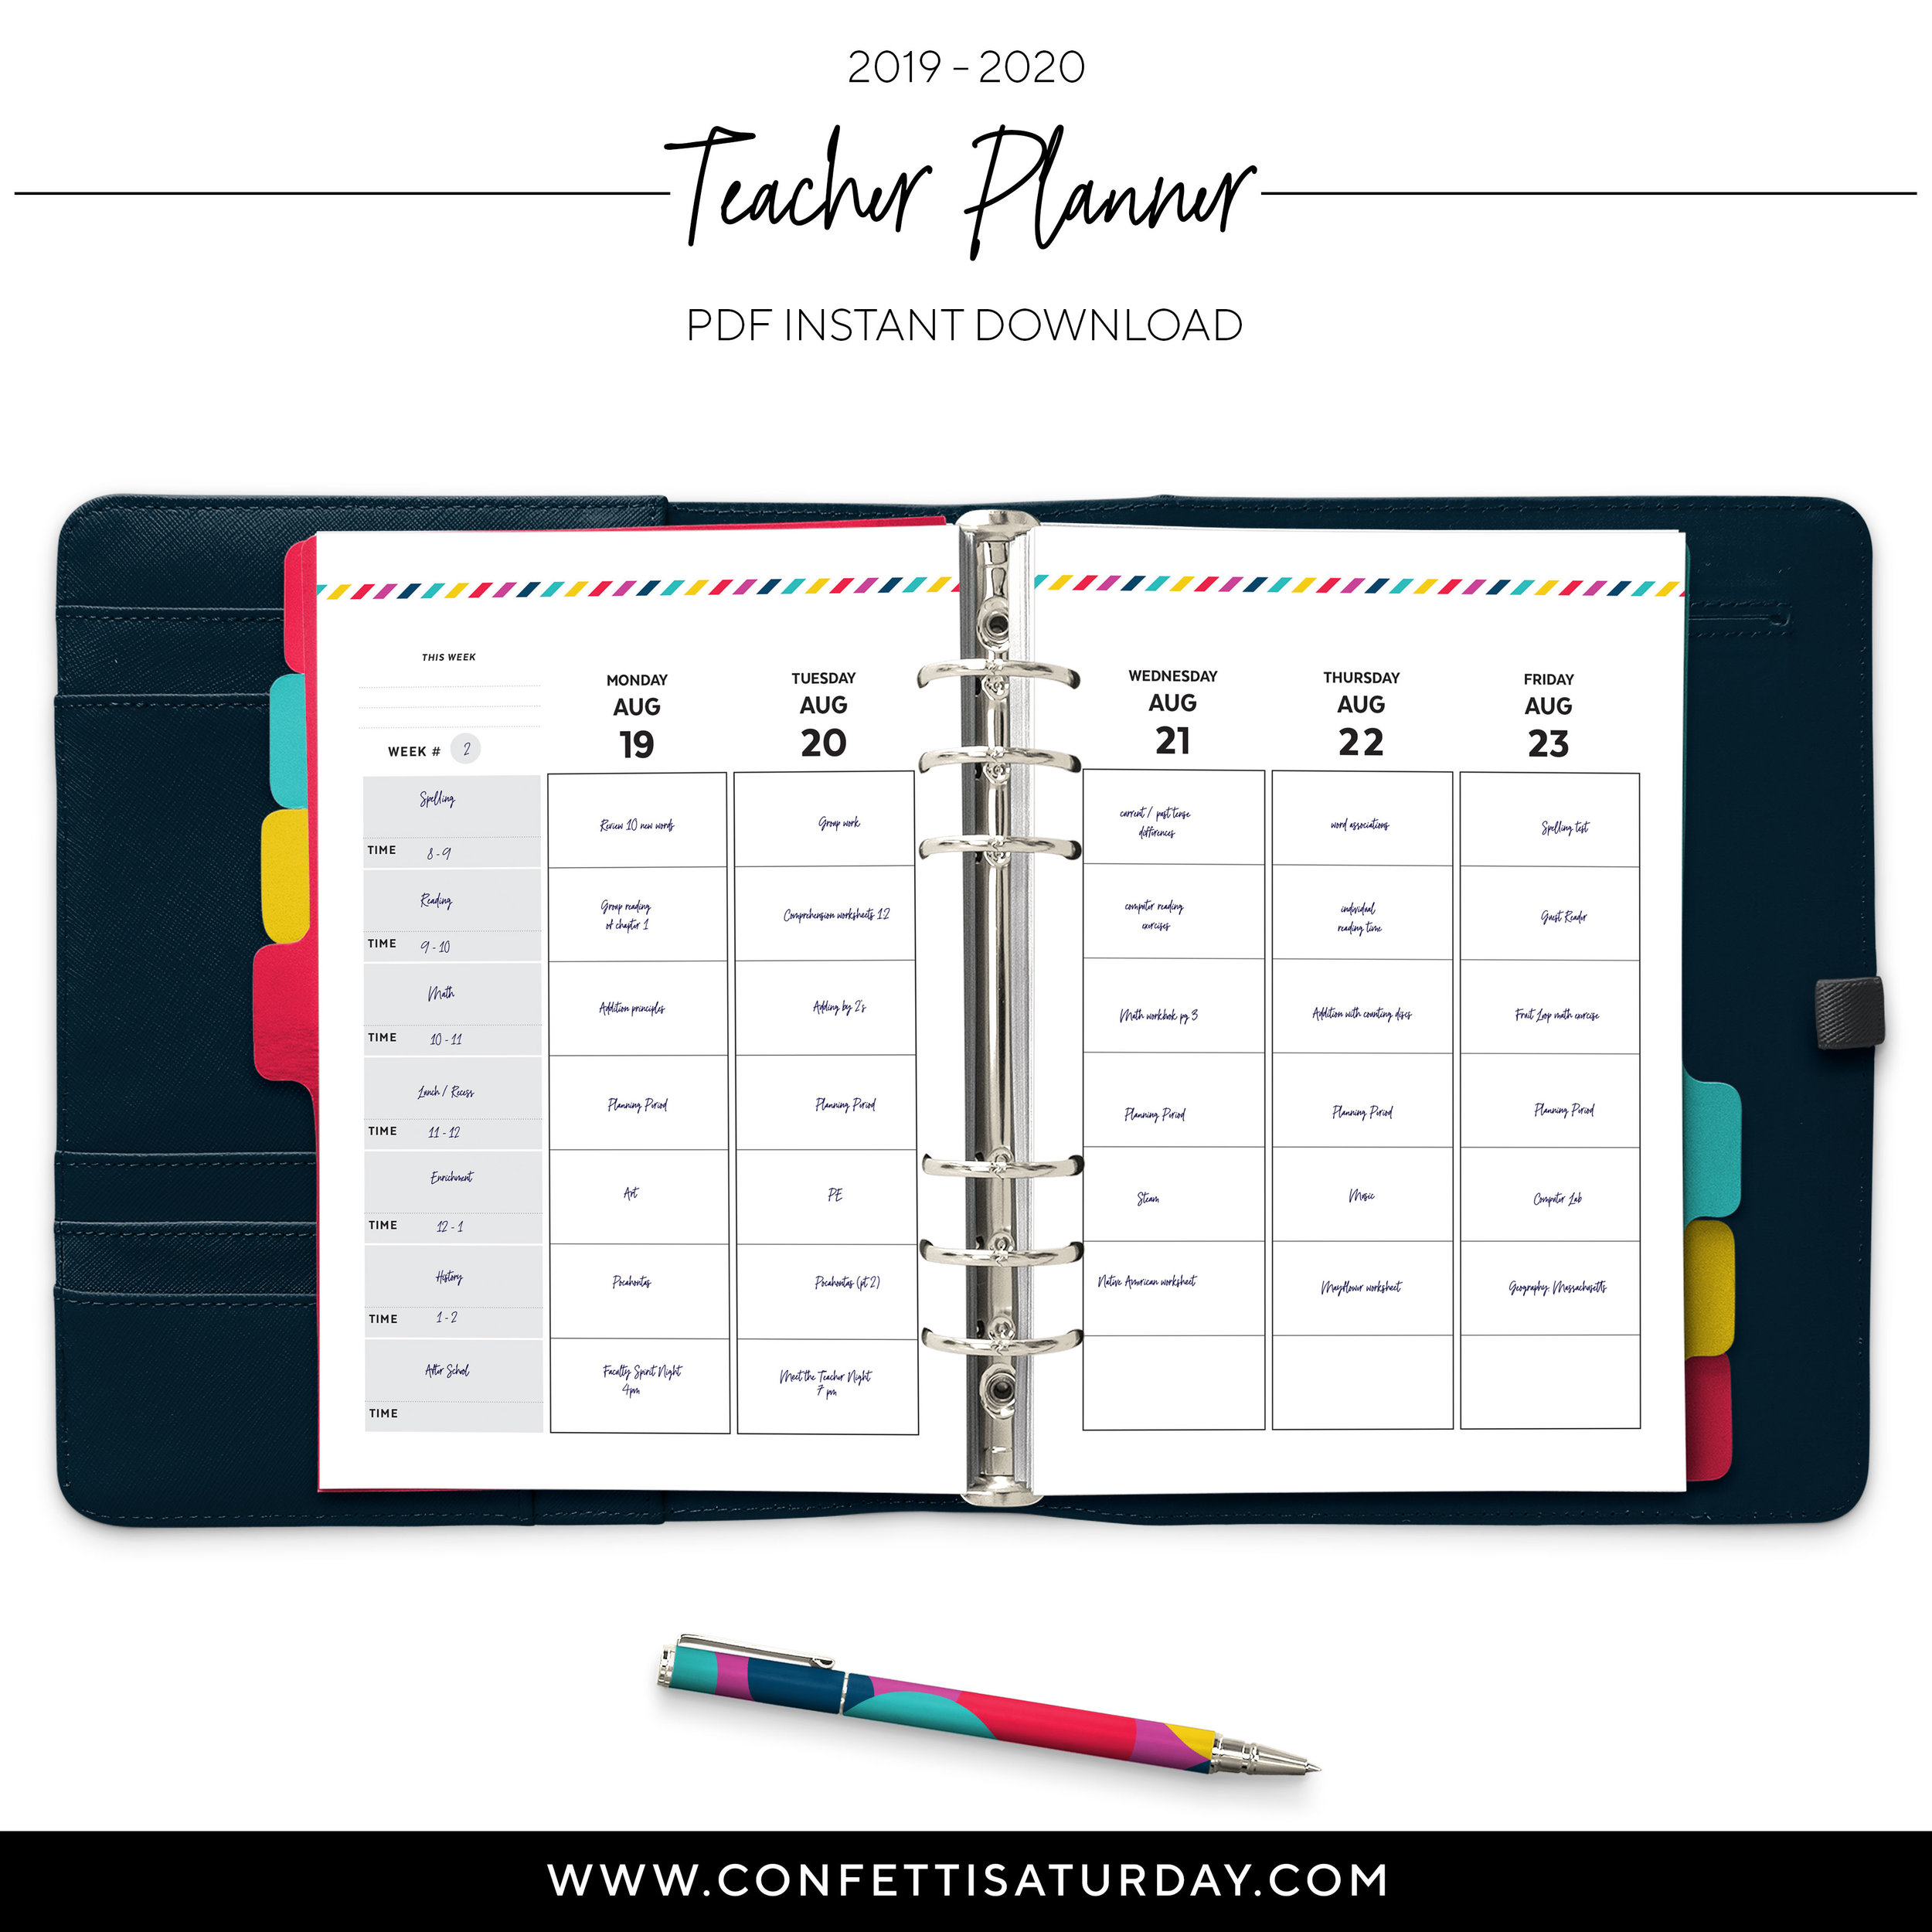 photo about Lesson Planner Printable called 2019 - 2020 Trainer Planner Vertical Signature Stripe Confetti Saay